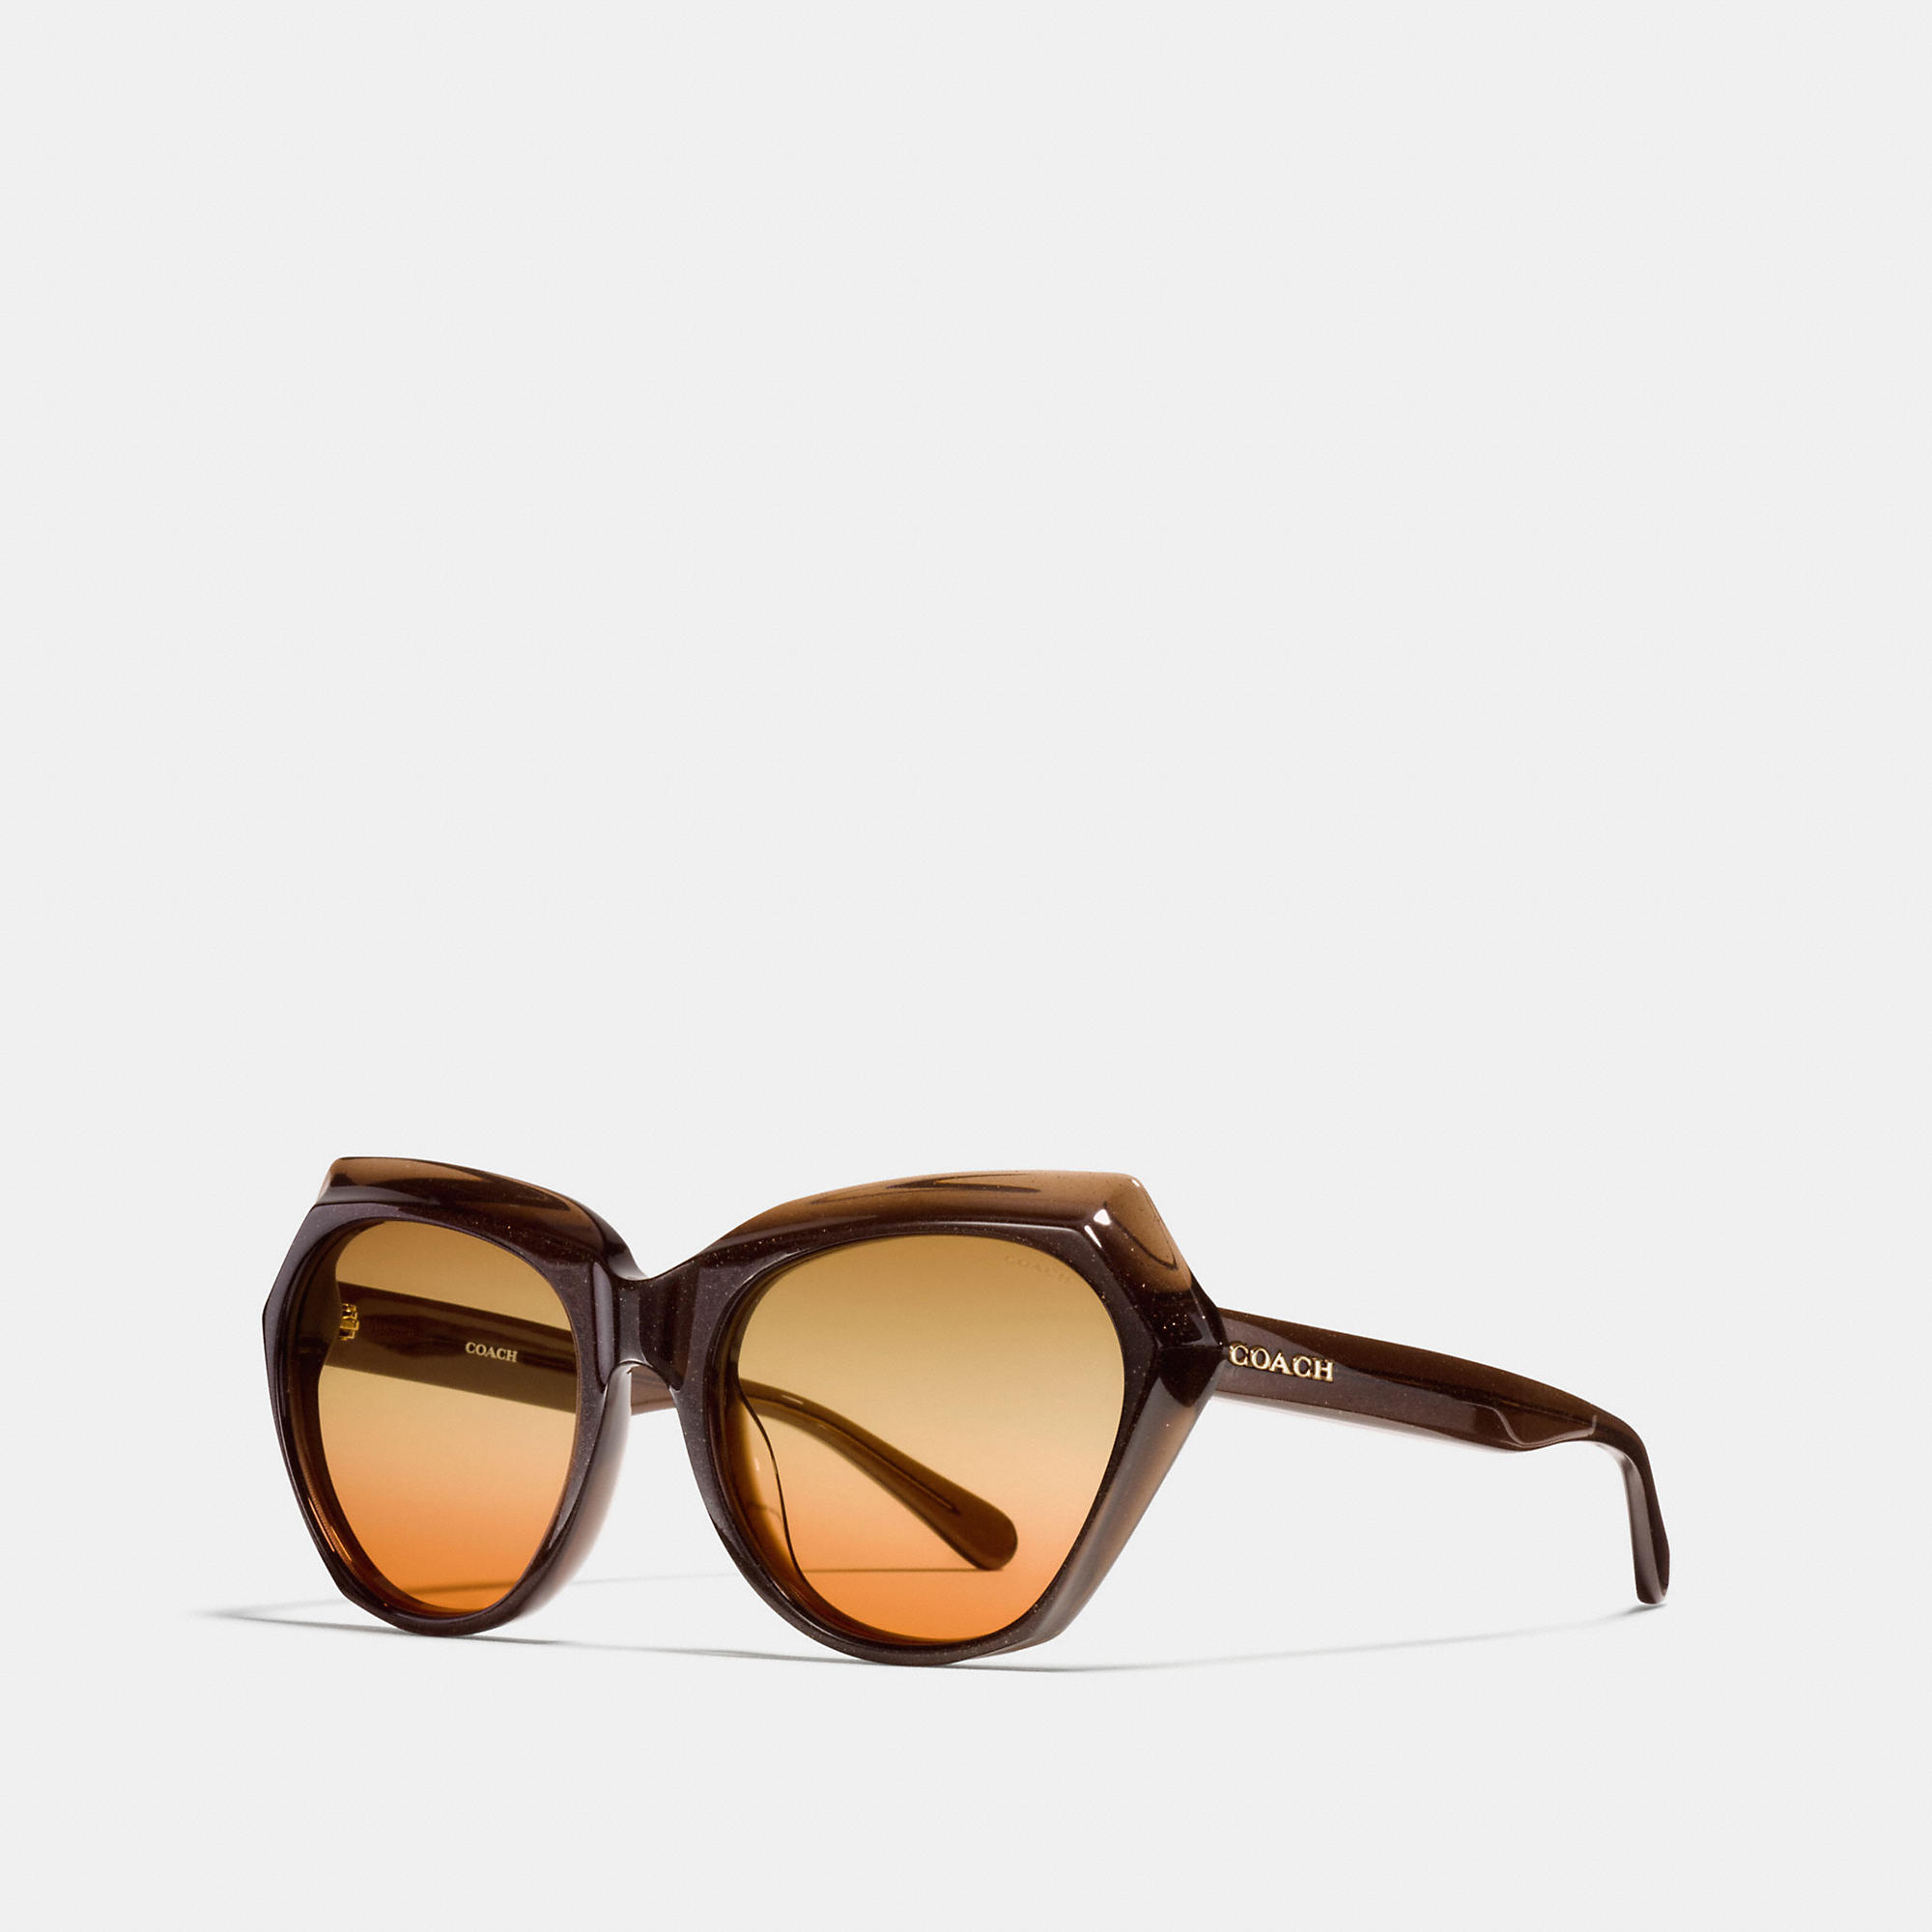 Coach Oasis Cat Eye Sunglasses